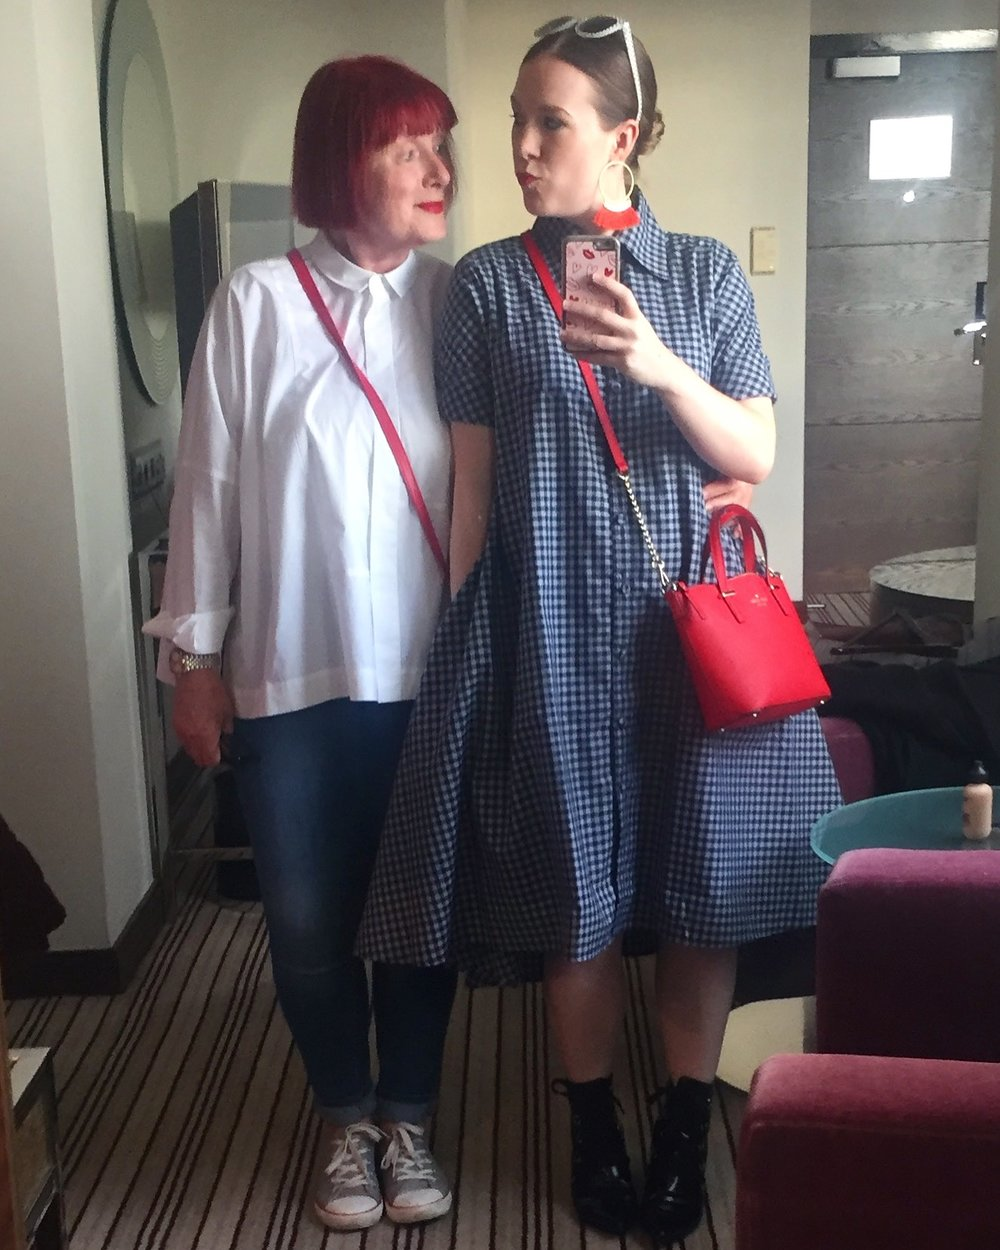 My mother Sally and me in a hotel in London. Matching purses of course.